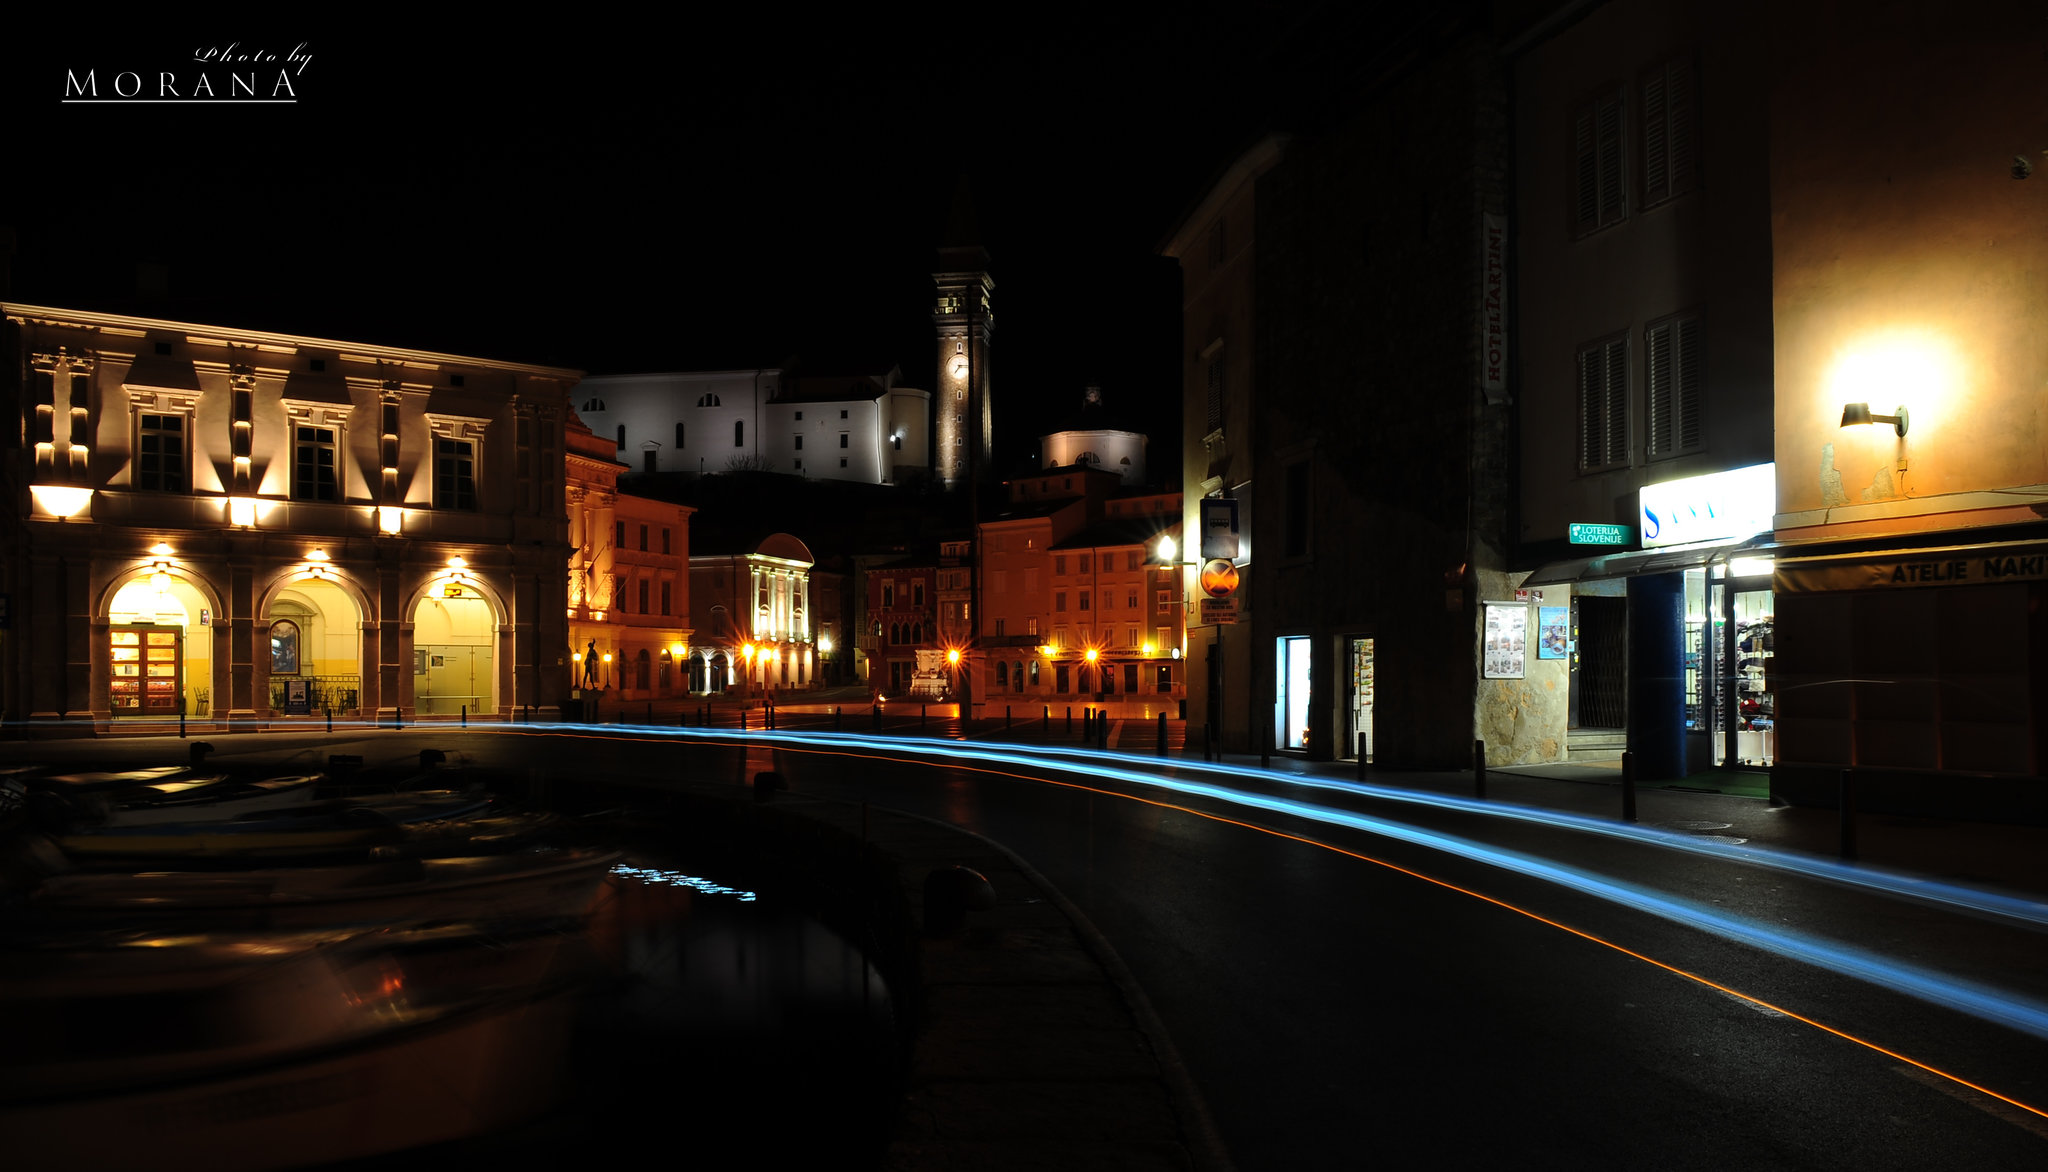 Old with the touch of the modern - Piran (long exposure)